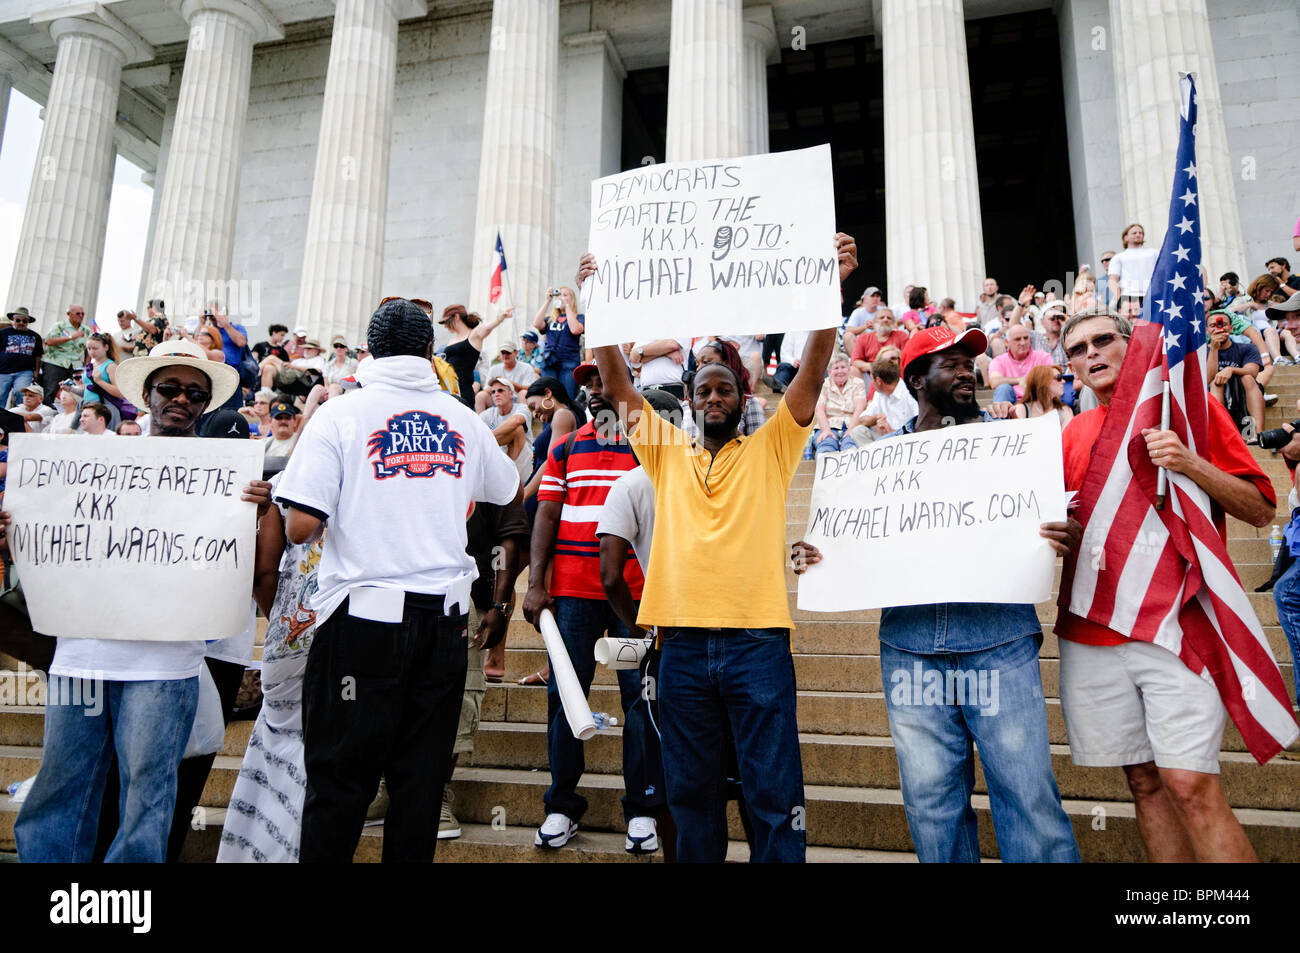 """WASHINGTON DC, USA - Conservative television commentator Glenn Beck's """"Restore Honor"""" conservative rally at the Stock Photo"""